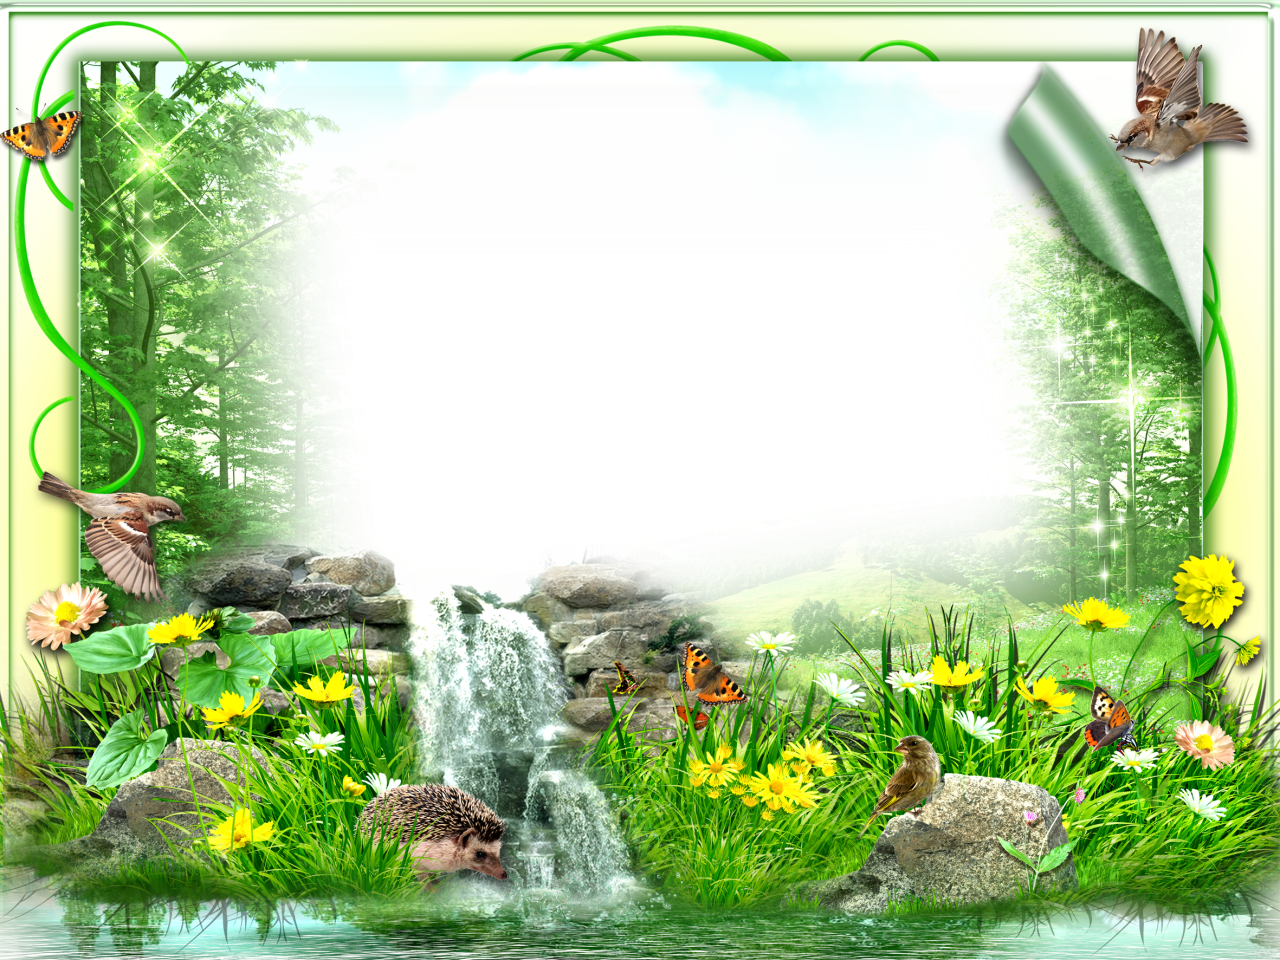 Photo Frame With Beautiful Nature Png 1280 960 Photo Frame Design Free Photo Frames Photo Frame App